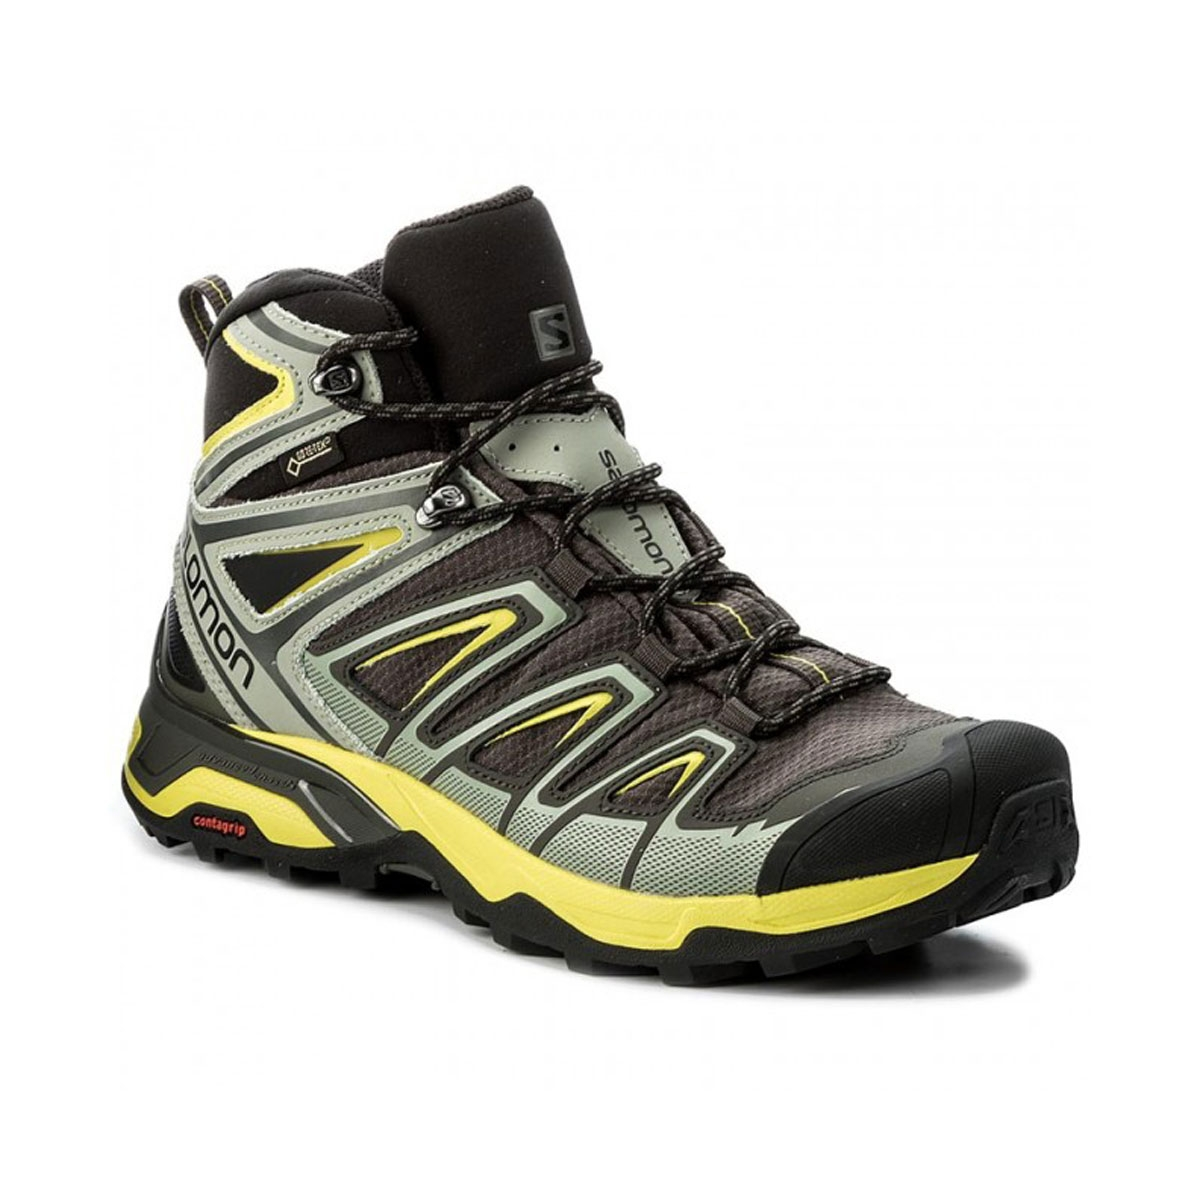 72e37cef Salomon X Ultra Mid 3 GTX Walking Boots (Men's) - Beluga/Shadow/Sulphur  Spring